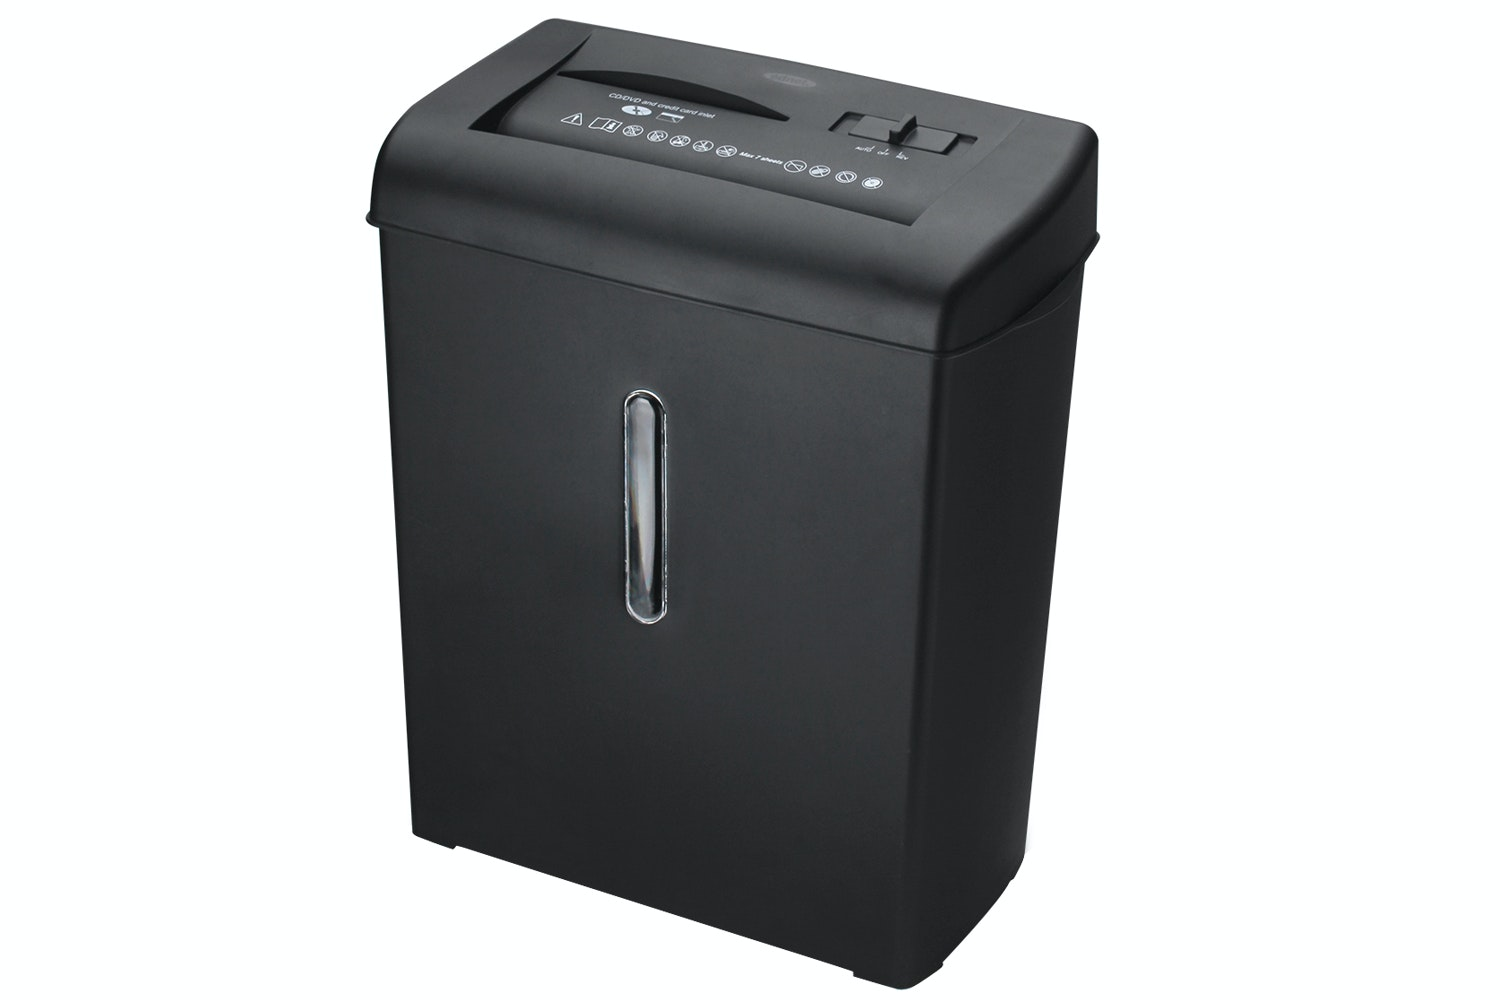 Ednet 7 Sheet Shredder | X7CD